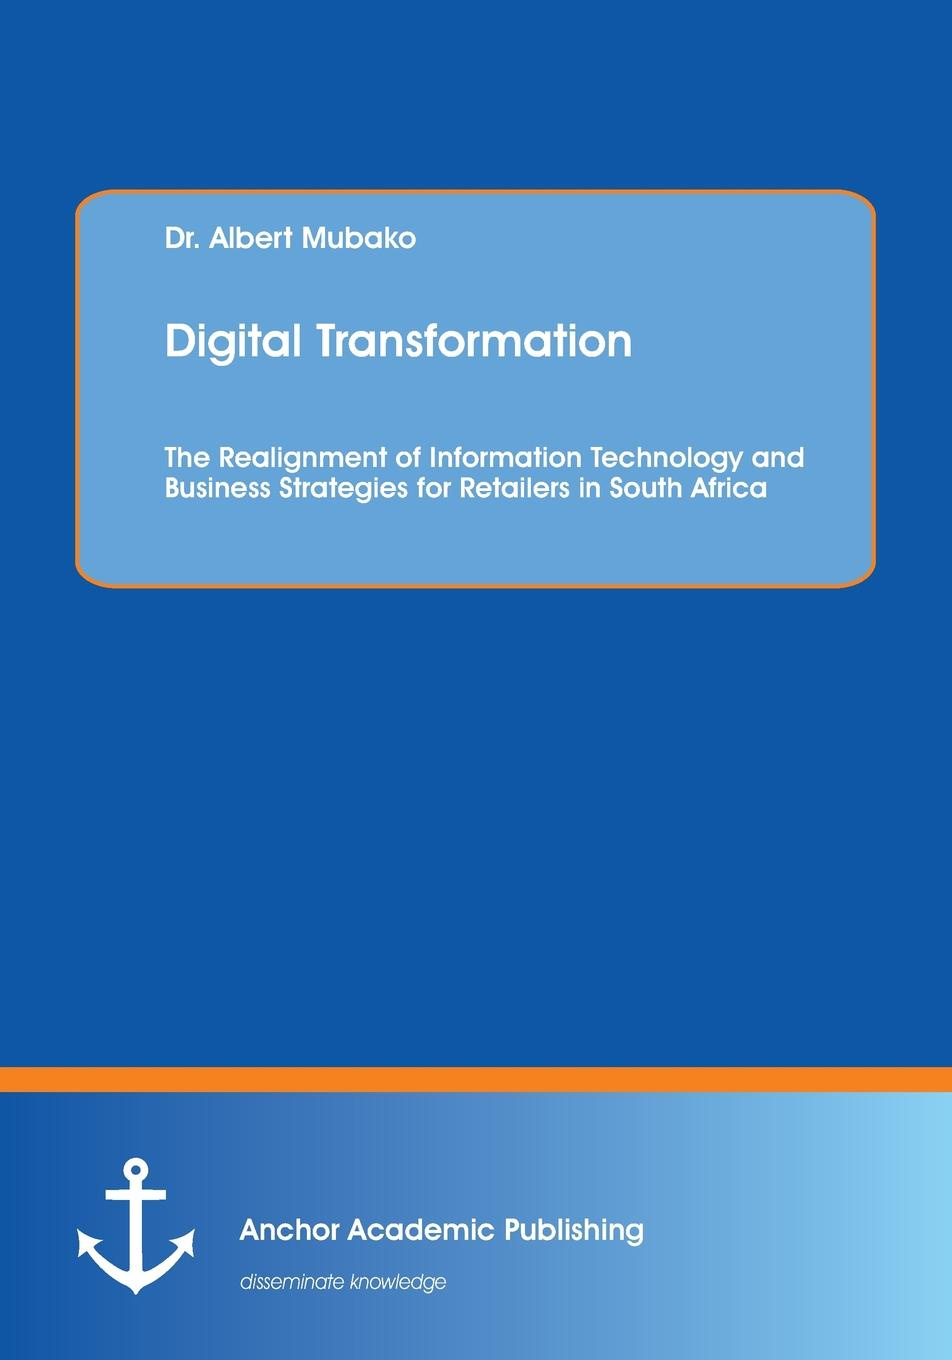 Albert Mubako Digital Transformation. The Realignment of Information Technology and Business Strategies for Retailers in South Africa niall mckeown mark durkin the seven principles of digital business strategy